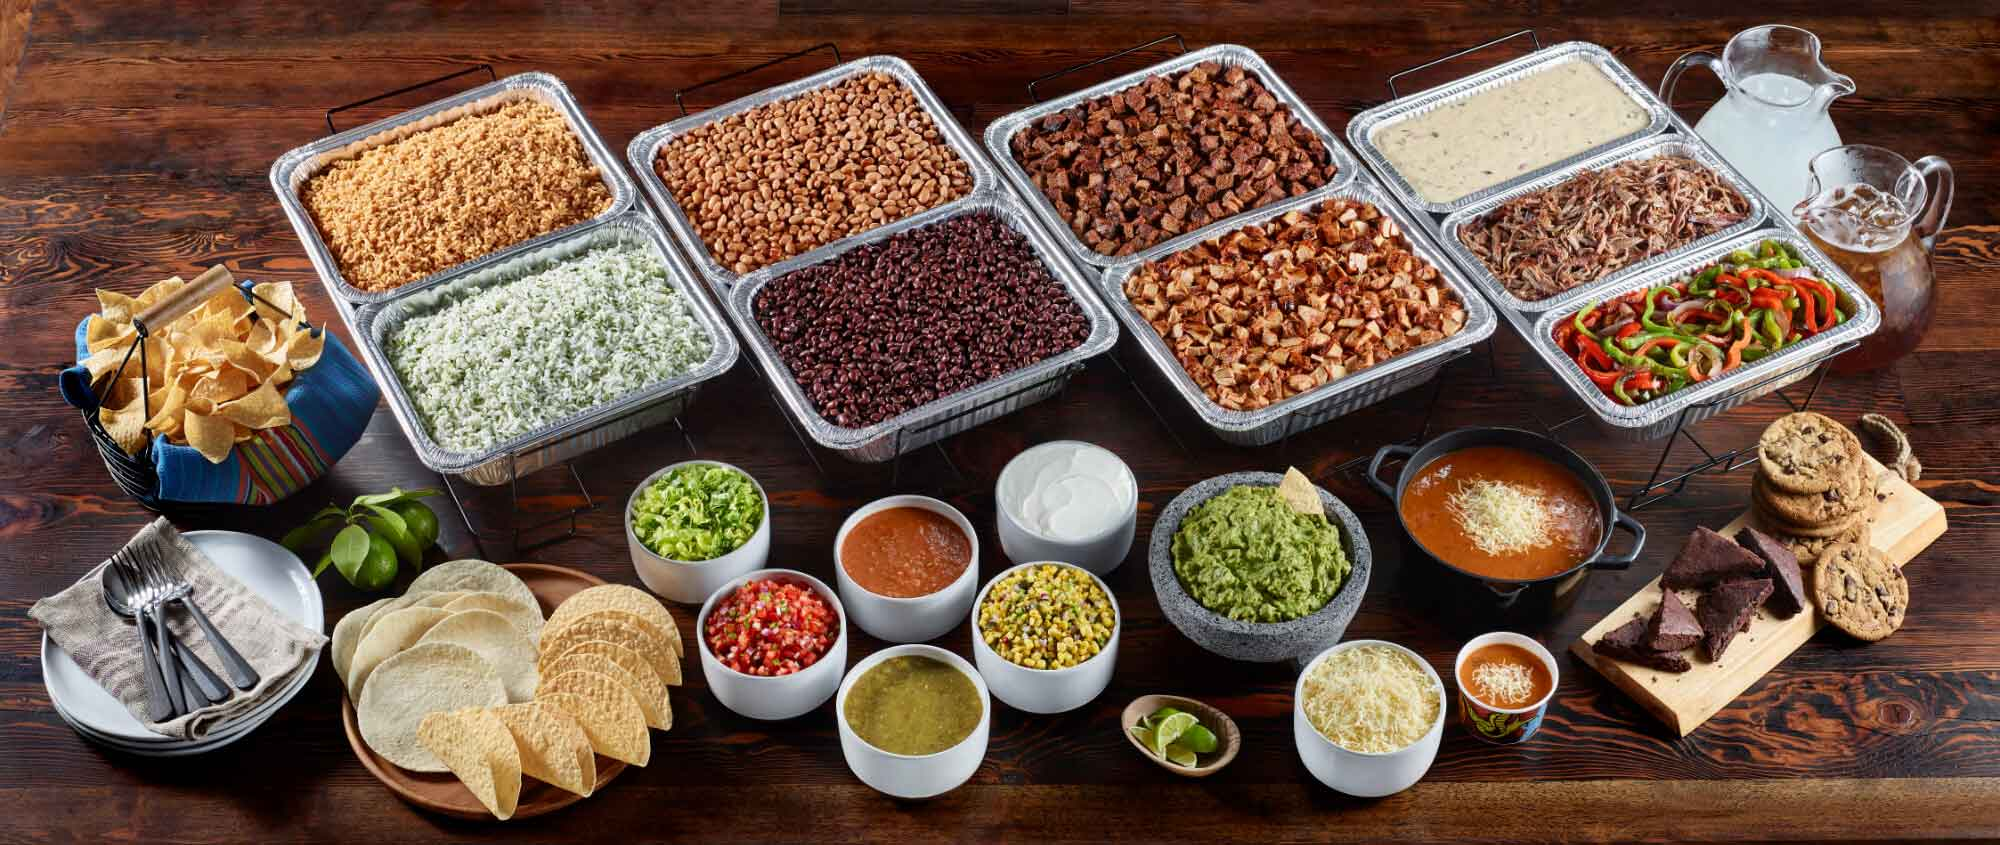 Qdoba Mexican Food Catering in Morgantown, Beckley and Charleston West Virginia